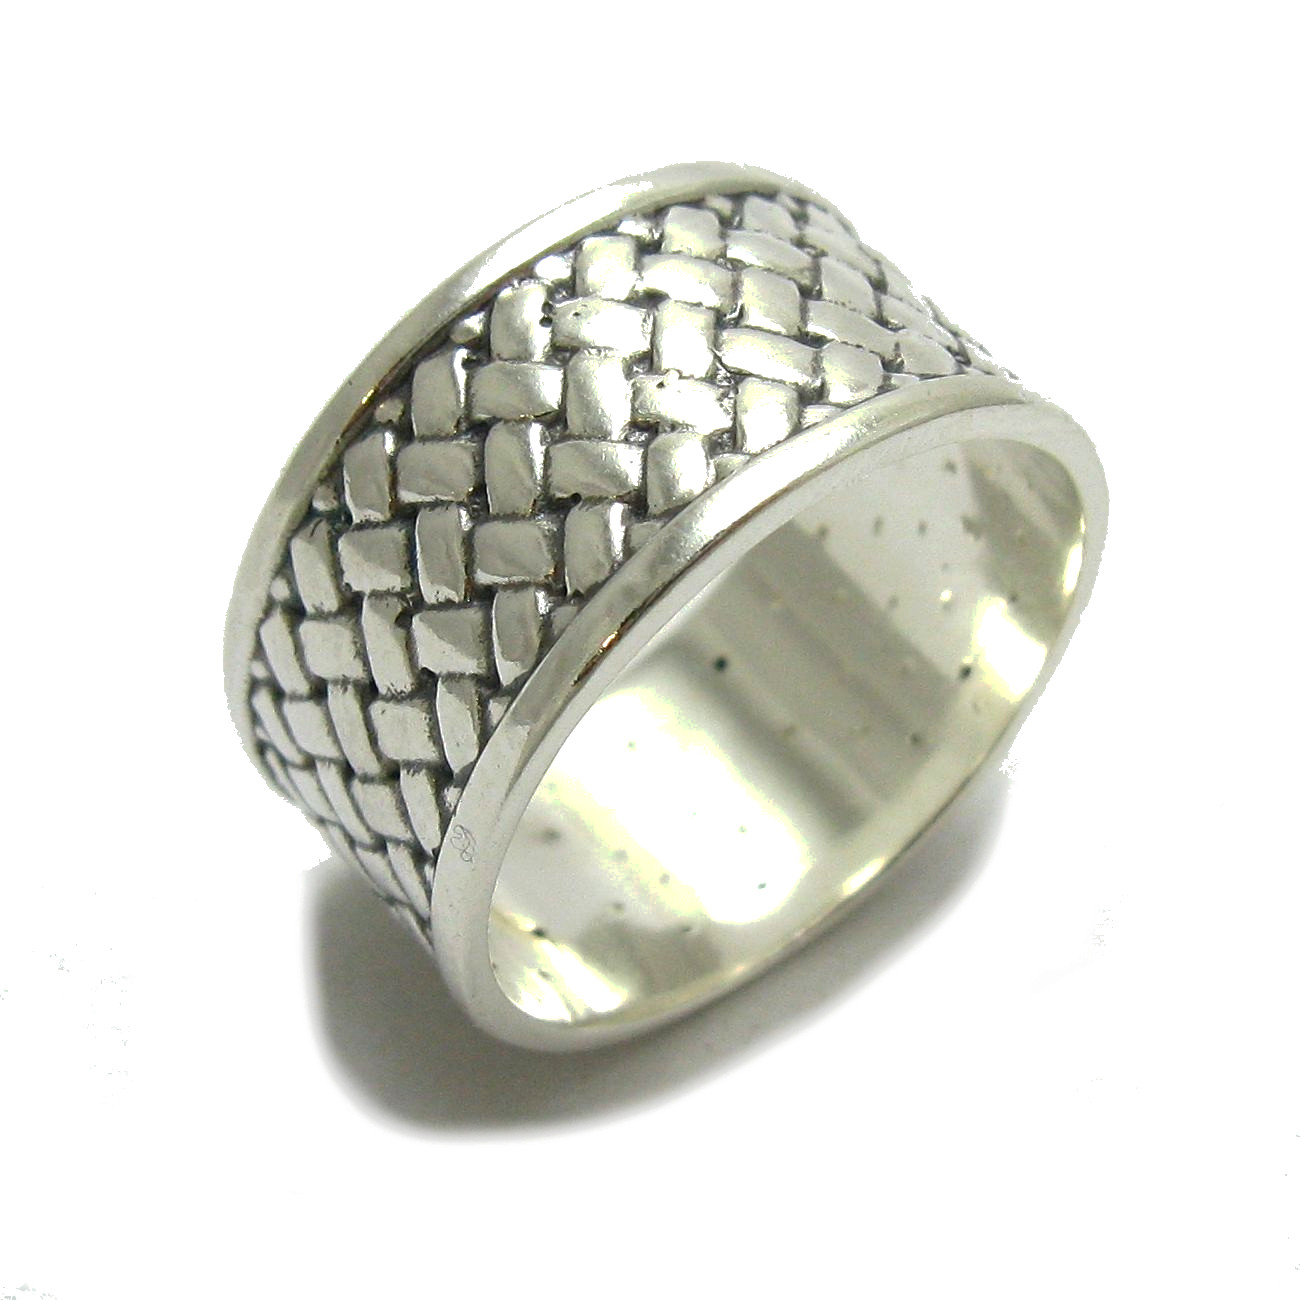 Silver ring - R001775